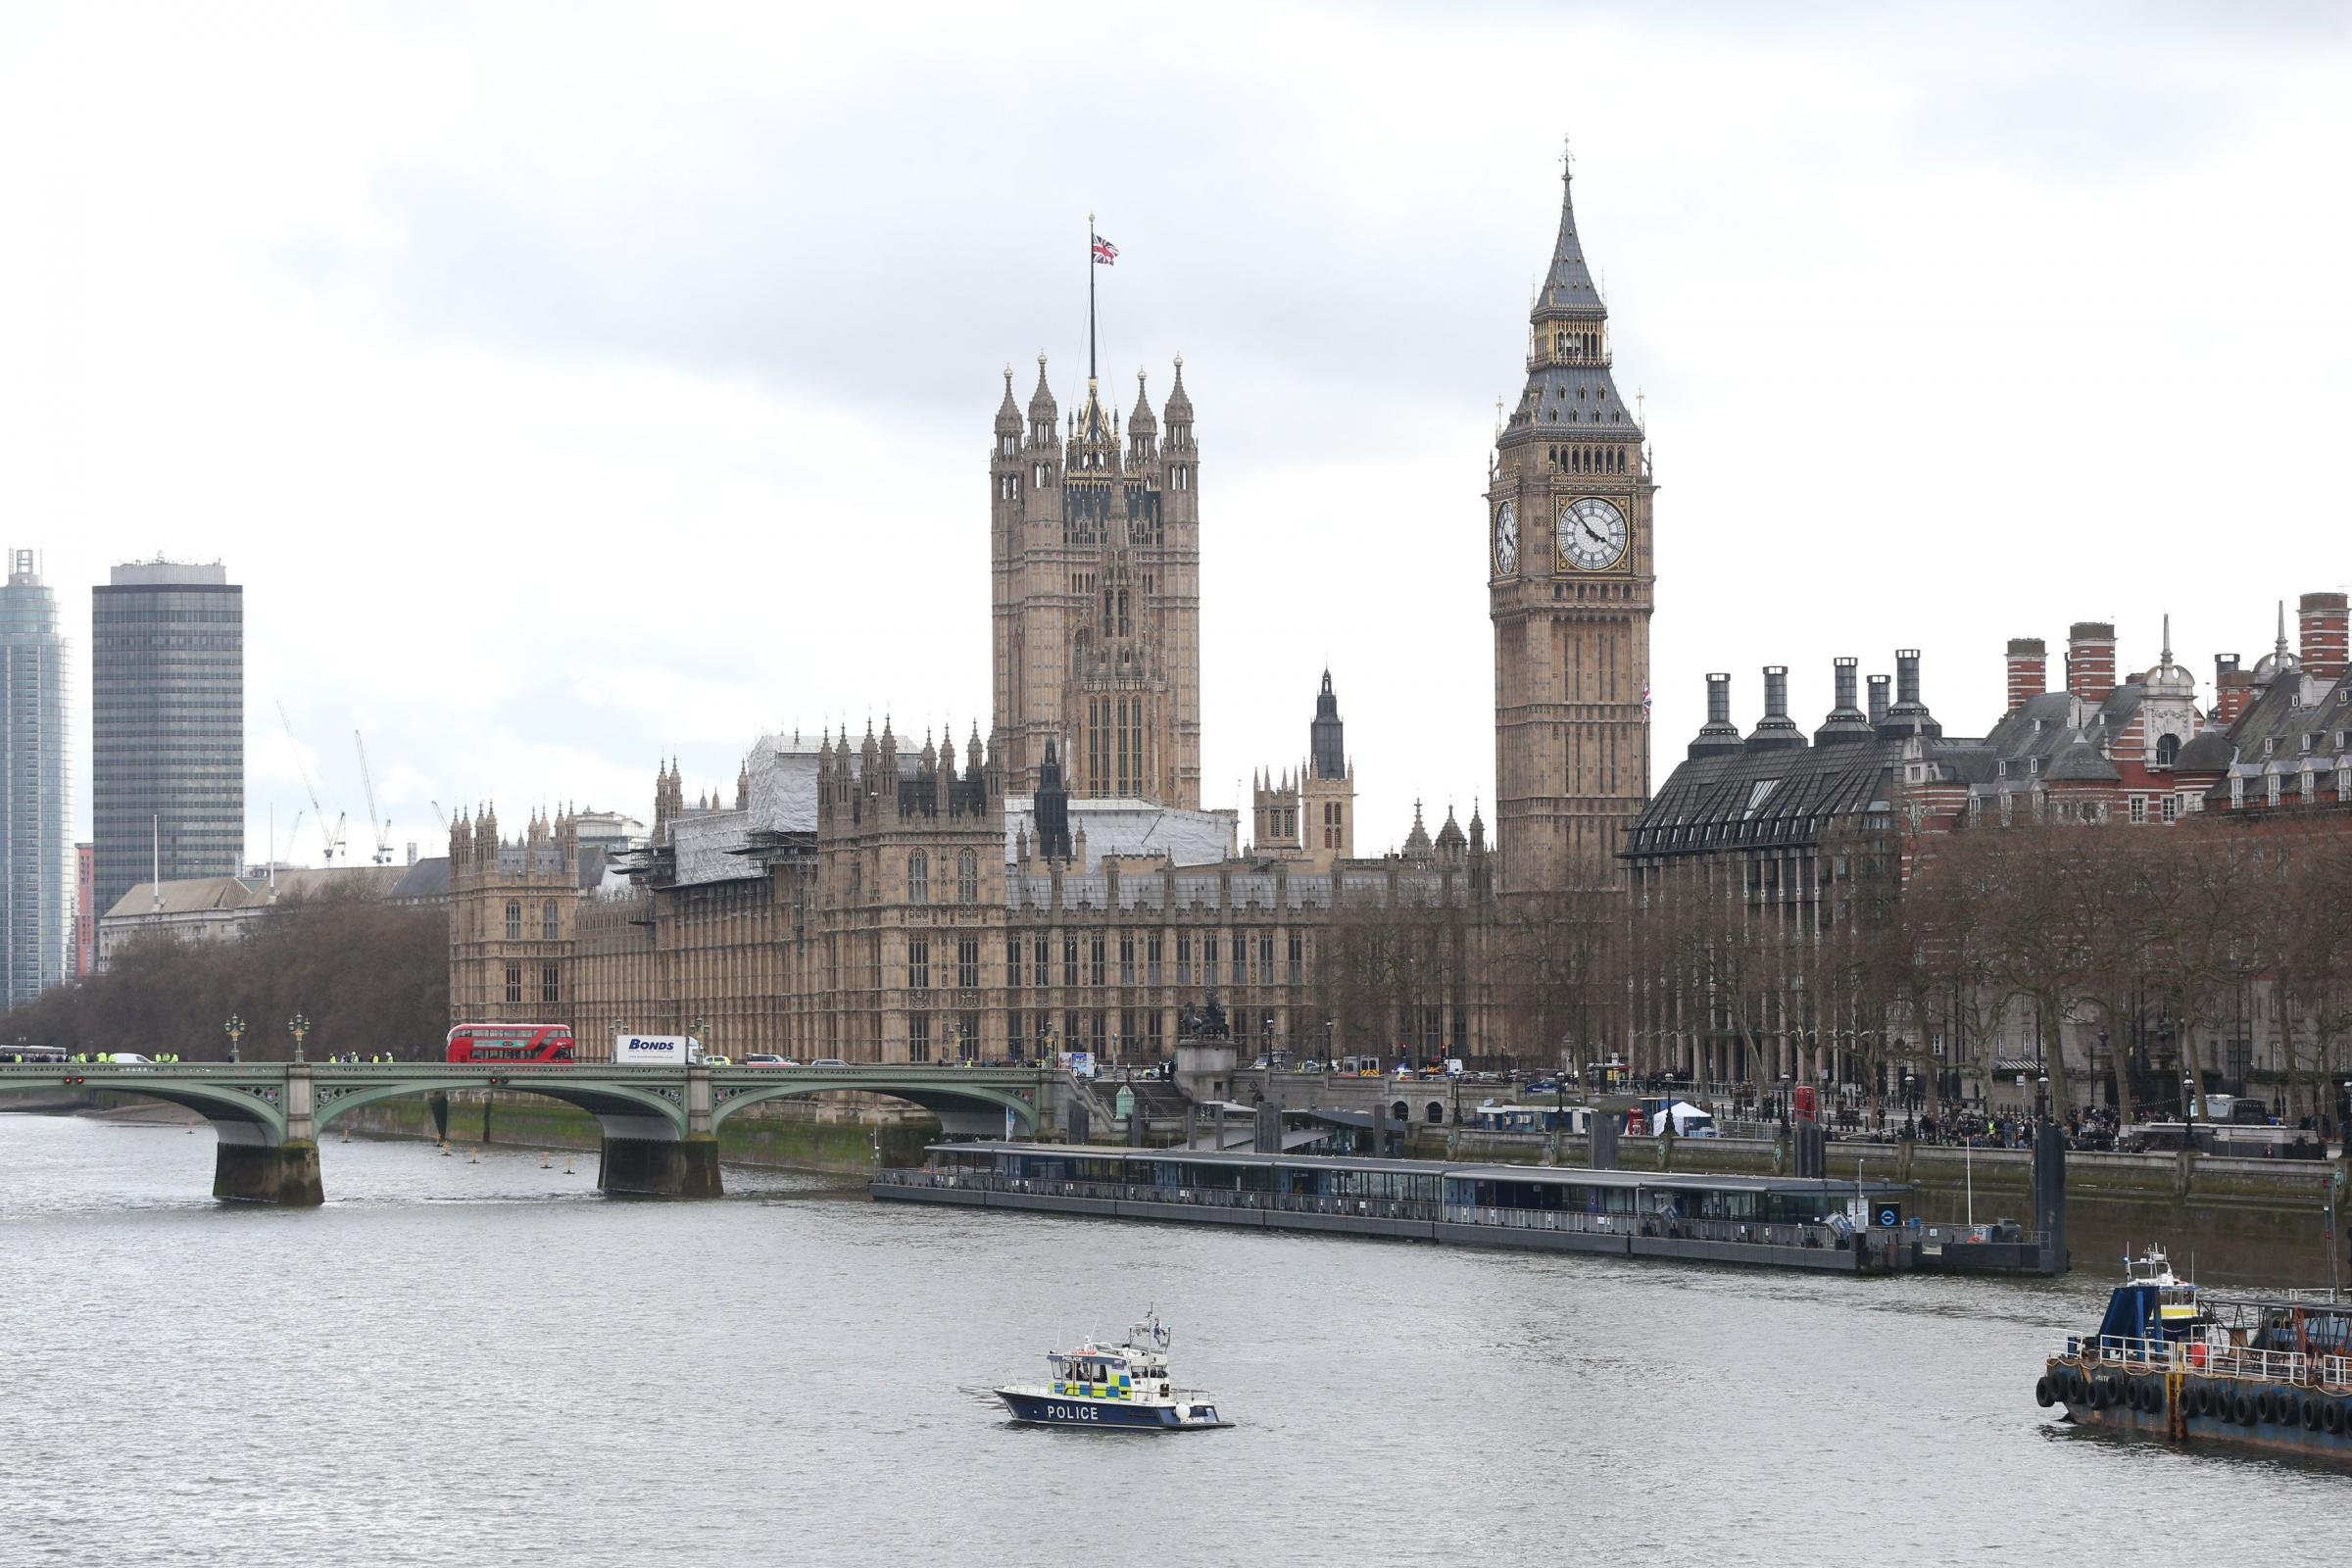 A police river boat on the River Thames at the Houses of Parliament, after a policeman was stabbed and his apparent attacker shot by officers in a major security incident at the Houses of Parliament.